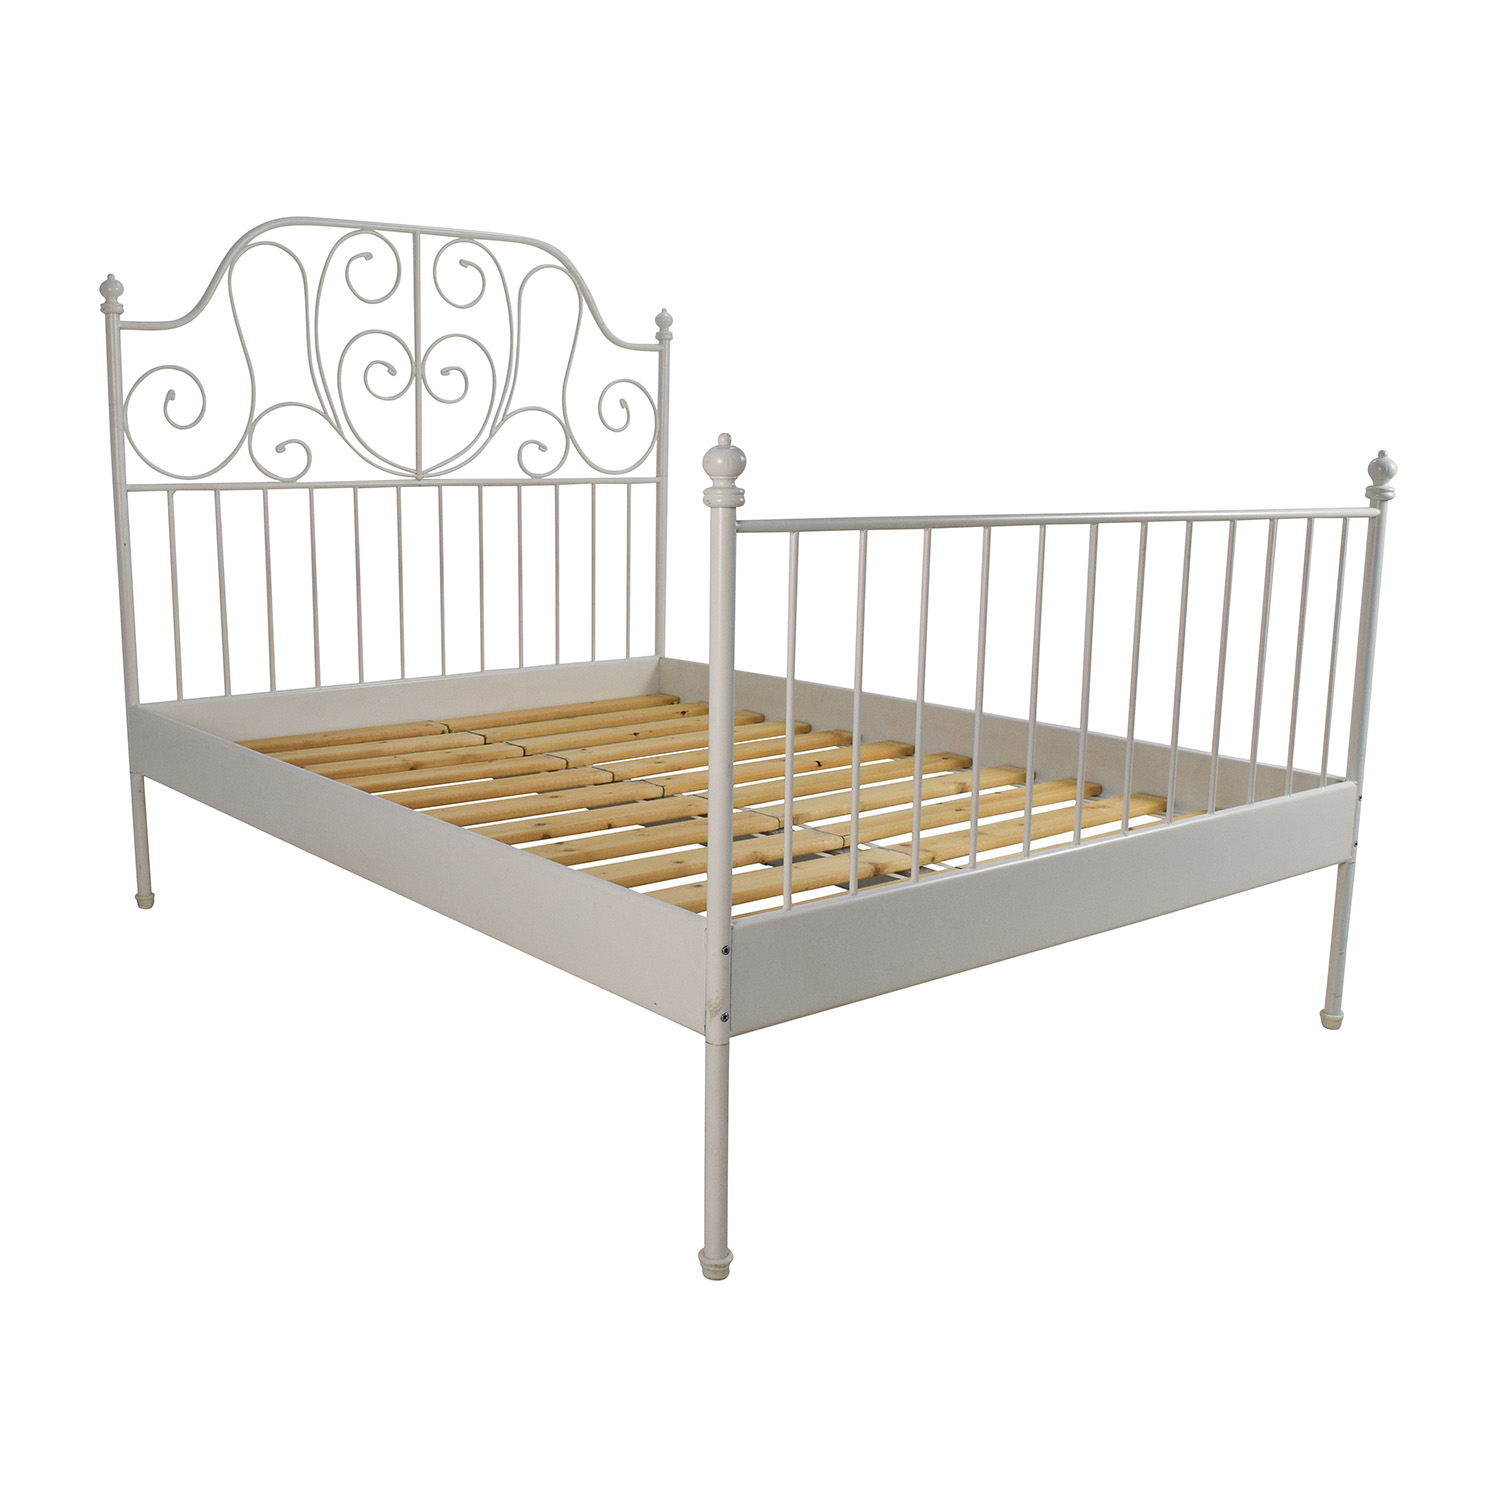 Fullsize Of Full Size Bed Frames